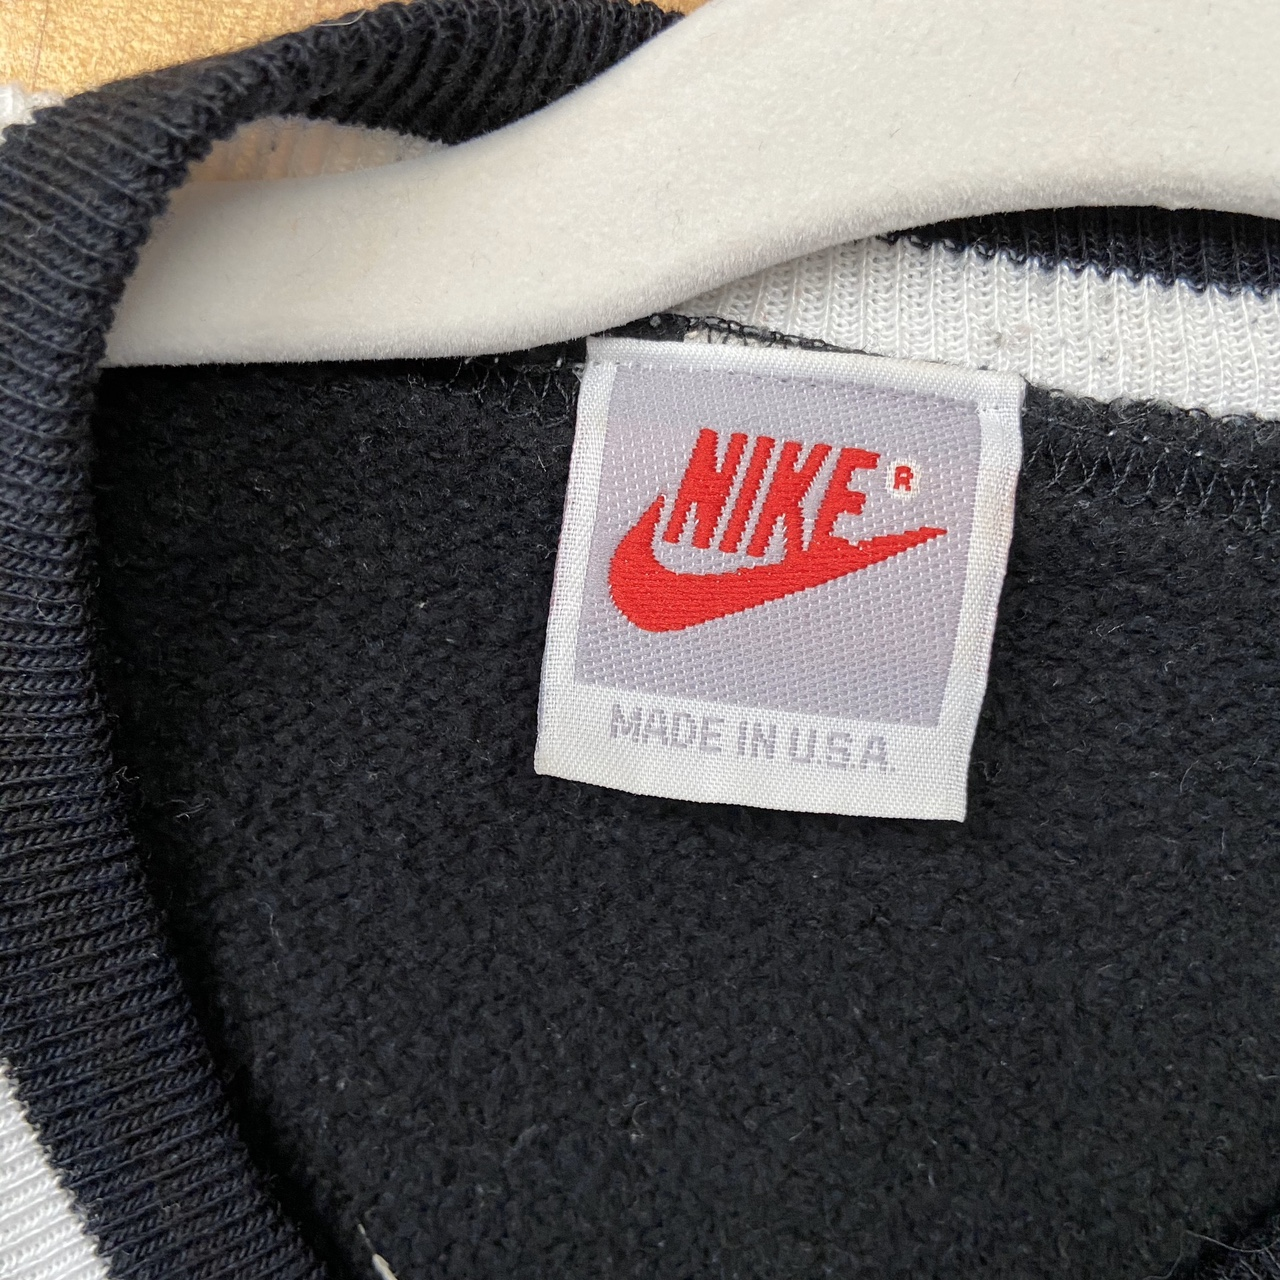 Product Image 2 - Beautiful embroidered vintage Nike sweatshirt